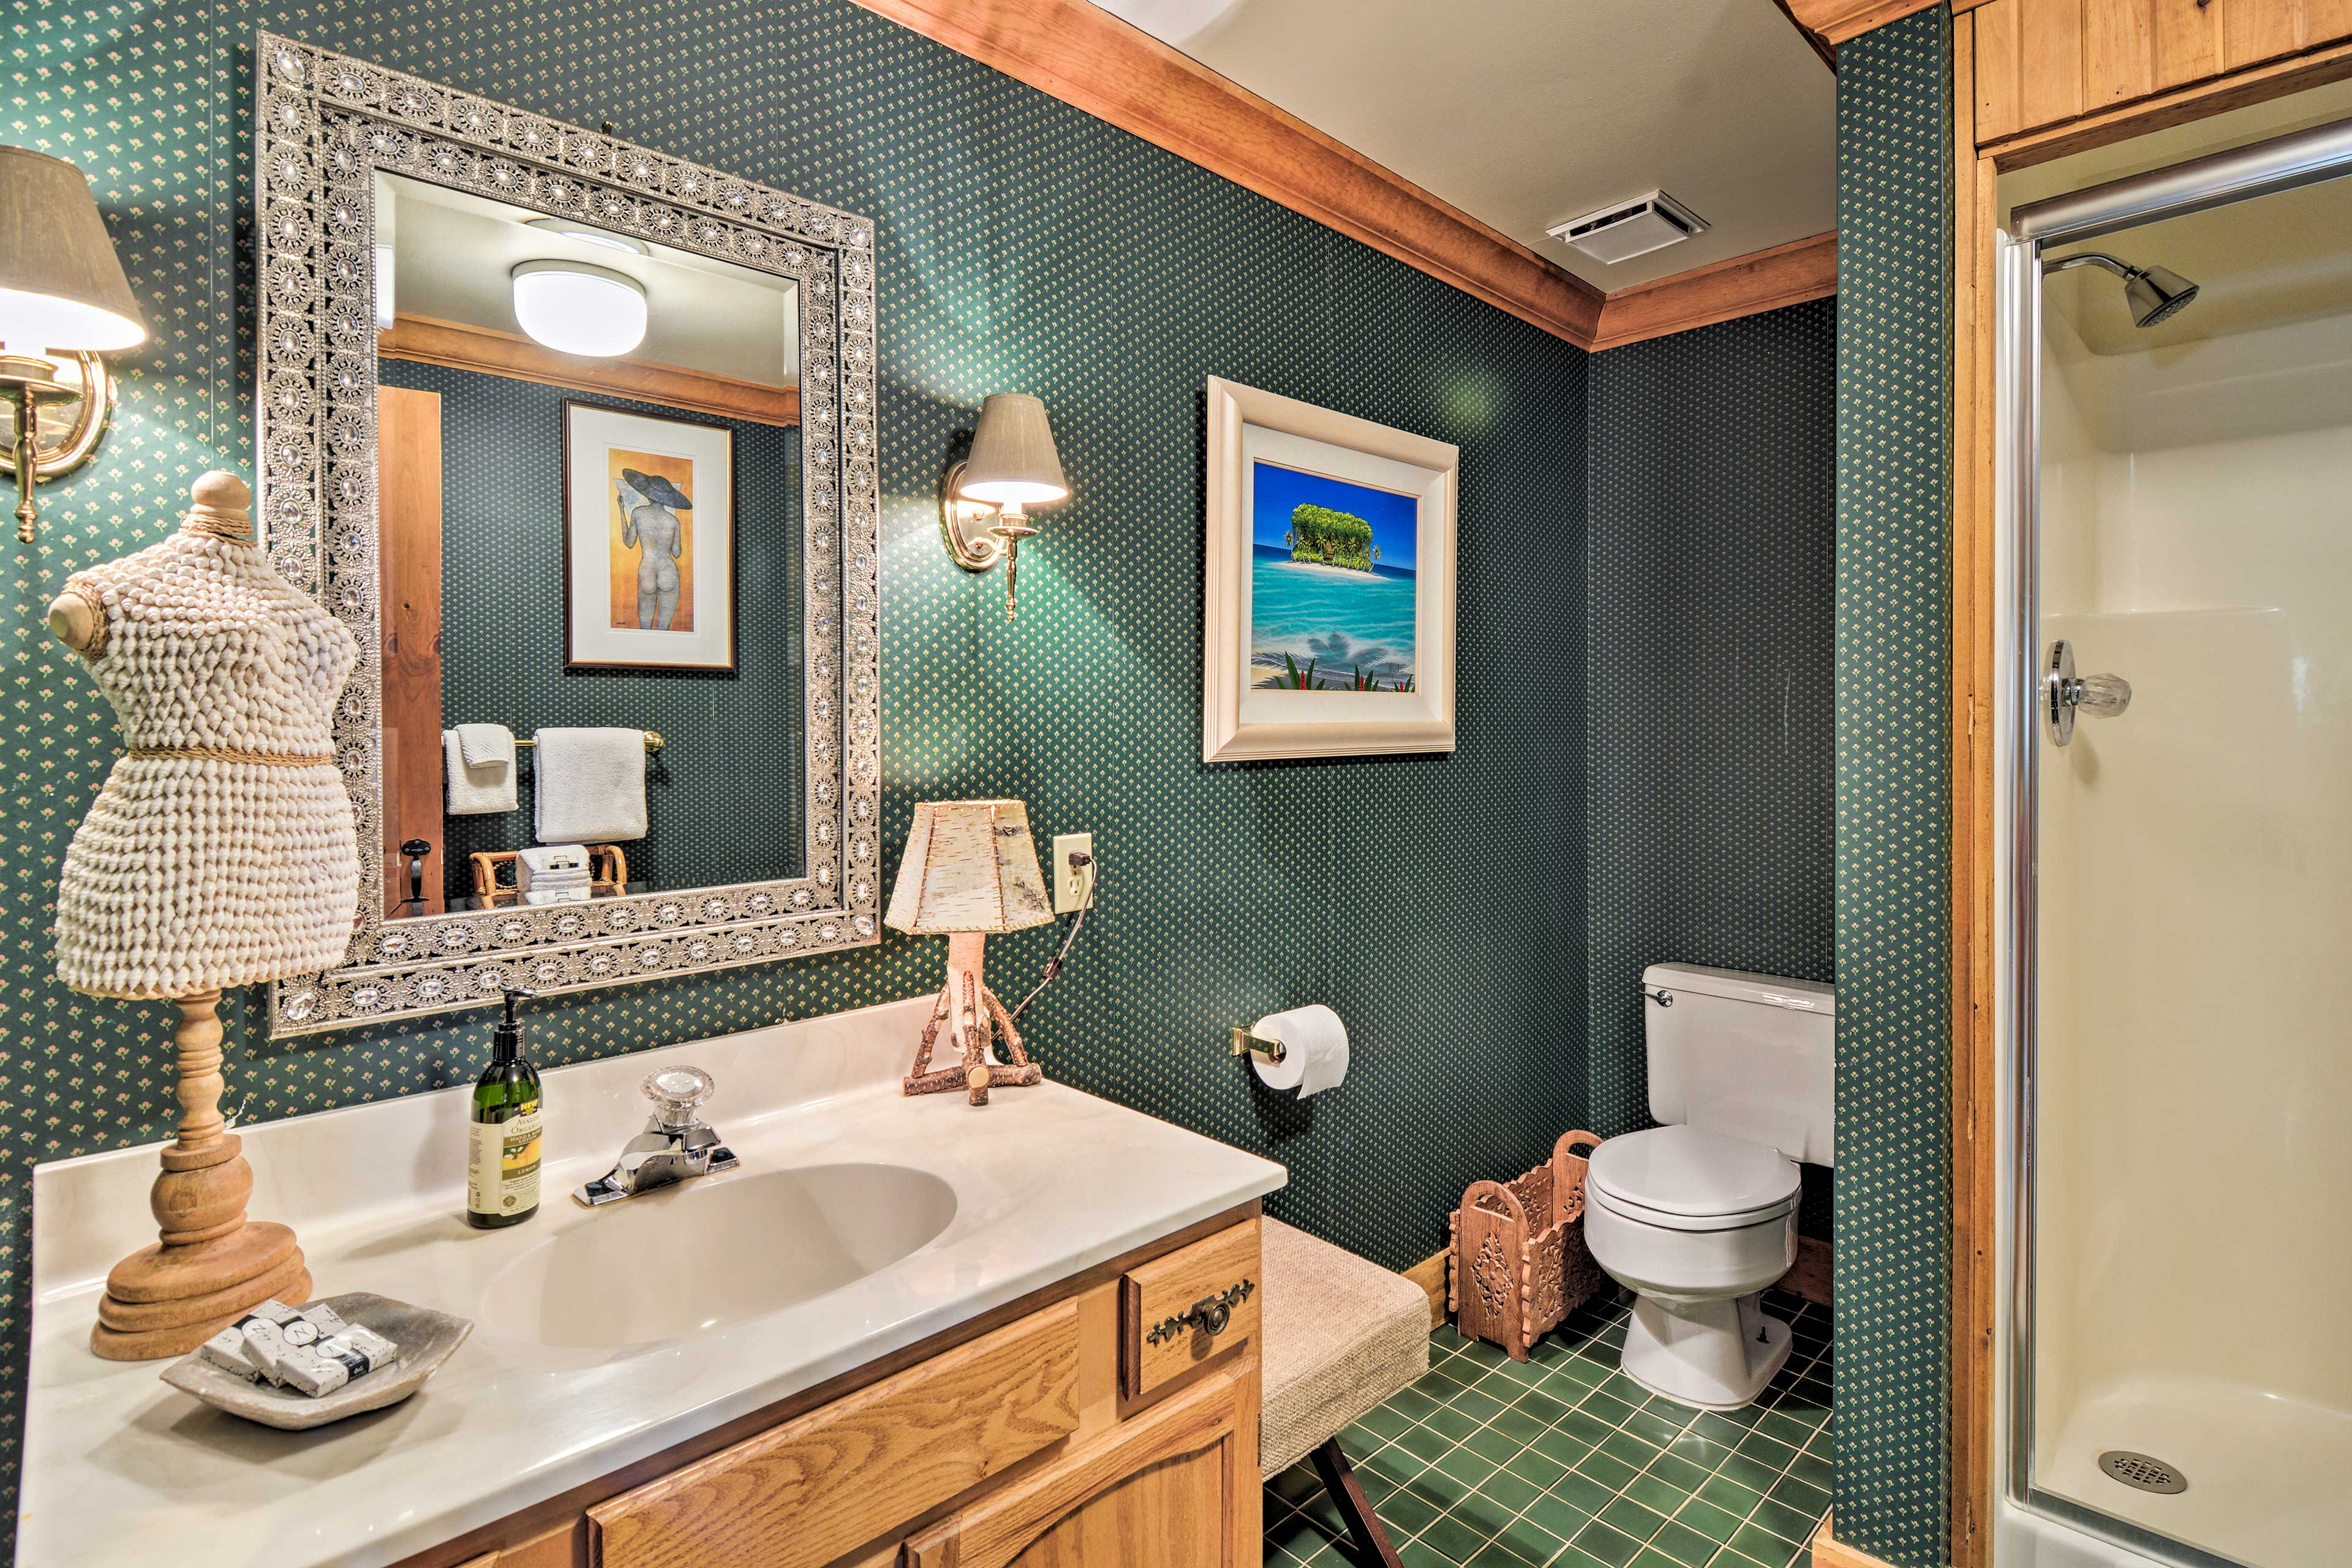 The downstairs bathroom is home to a shower to rinse of and freshen up.